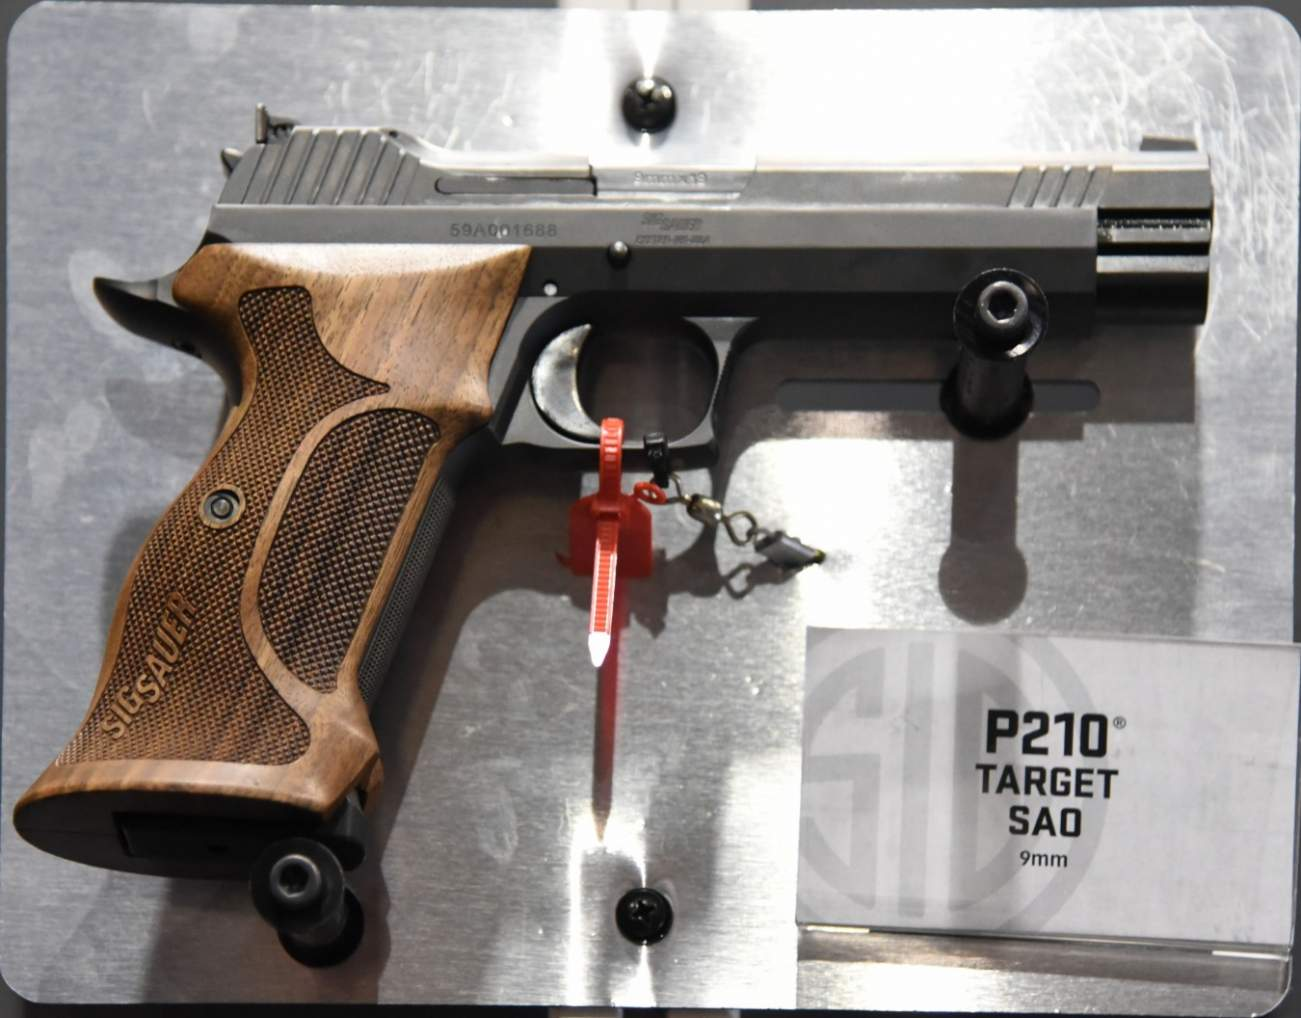 In Terms Of Accuracy, Sig Sauer's P210 Service Pistol Is King